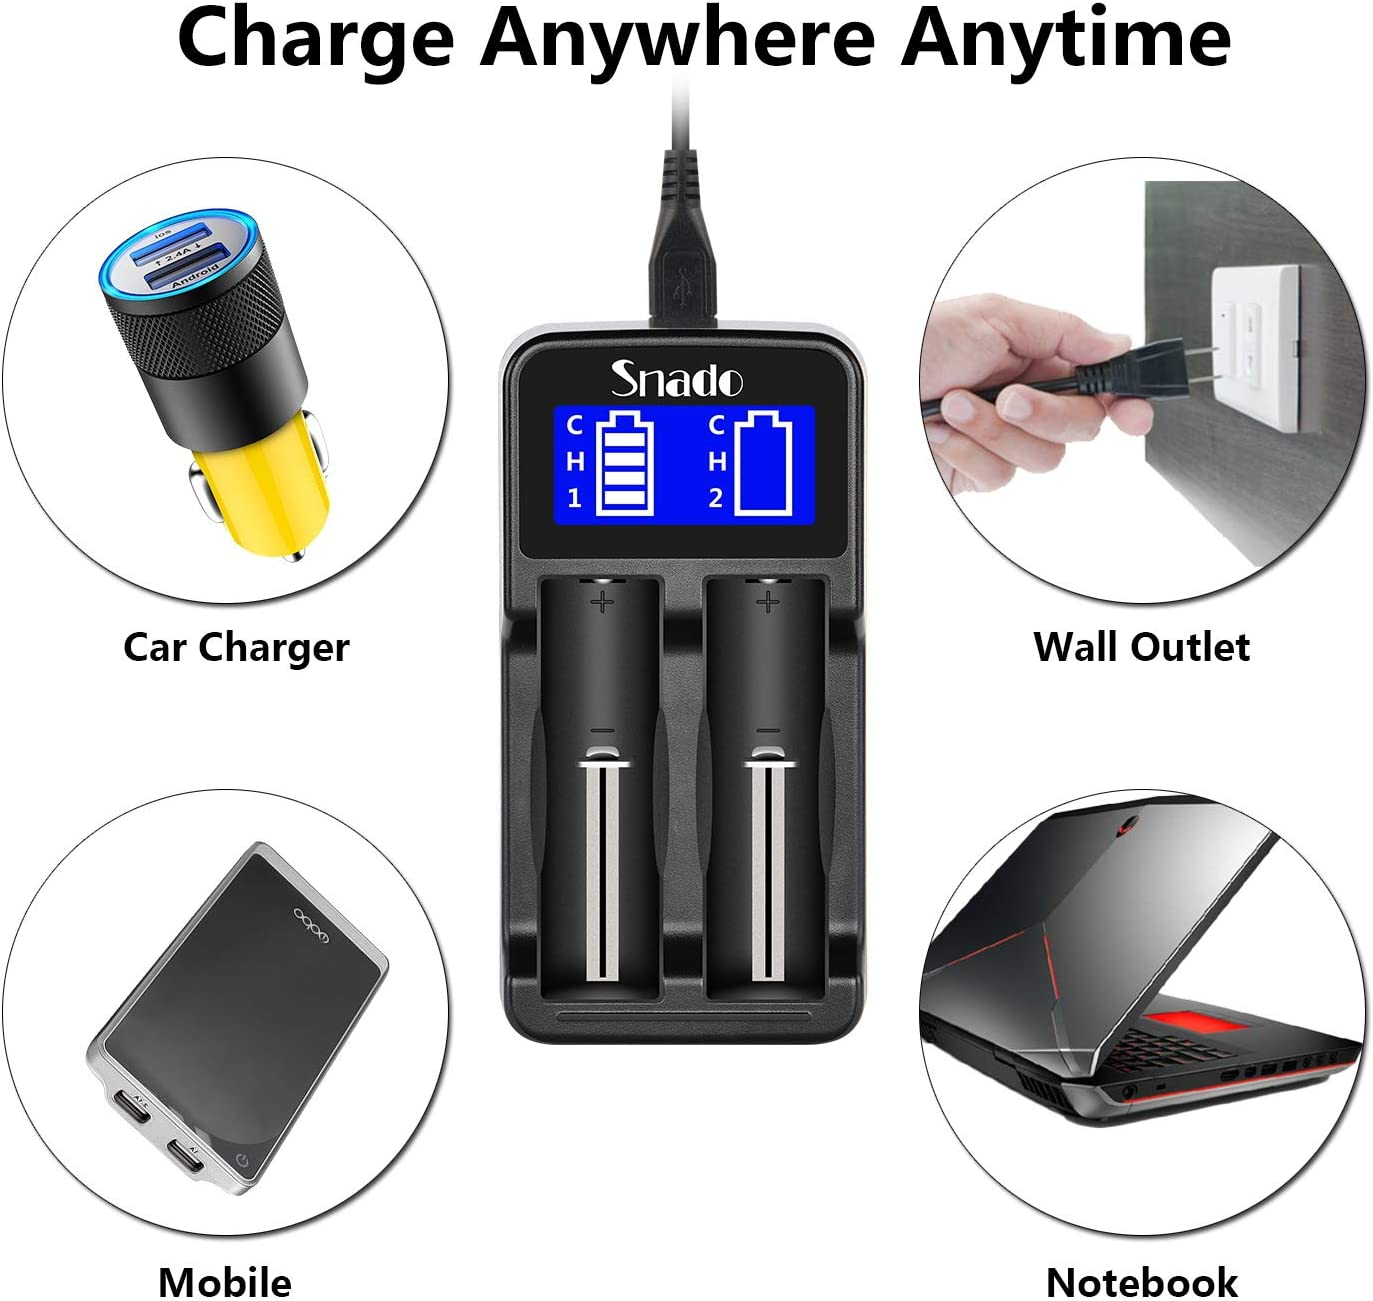 Intelligent Charger, Snado LCD Display Universal Smart Charger for Rechargeable Batteries Li-ion Batteries 18650 18490 18350 17670 17500 16340 14500, Ni-MH/Ni-Cd A AA AAA Batteries (2 Slots) : Electronics